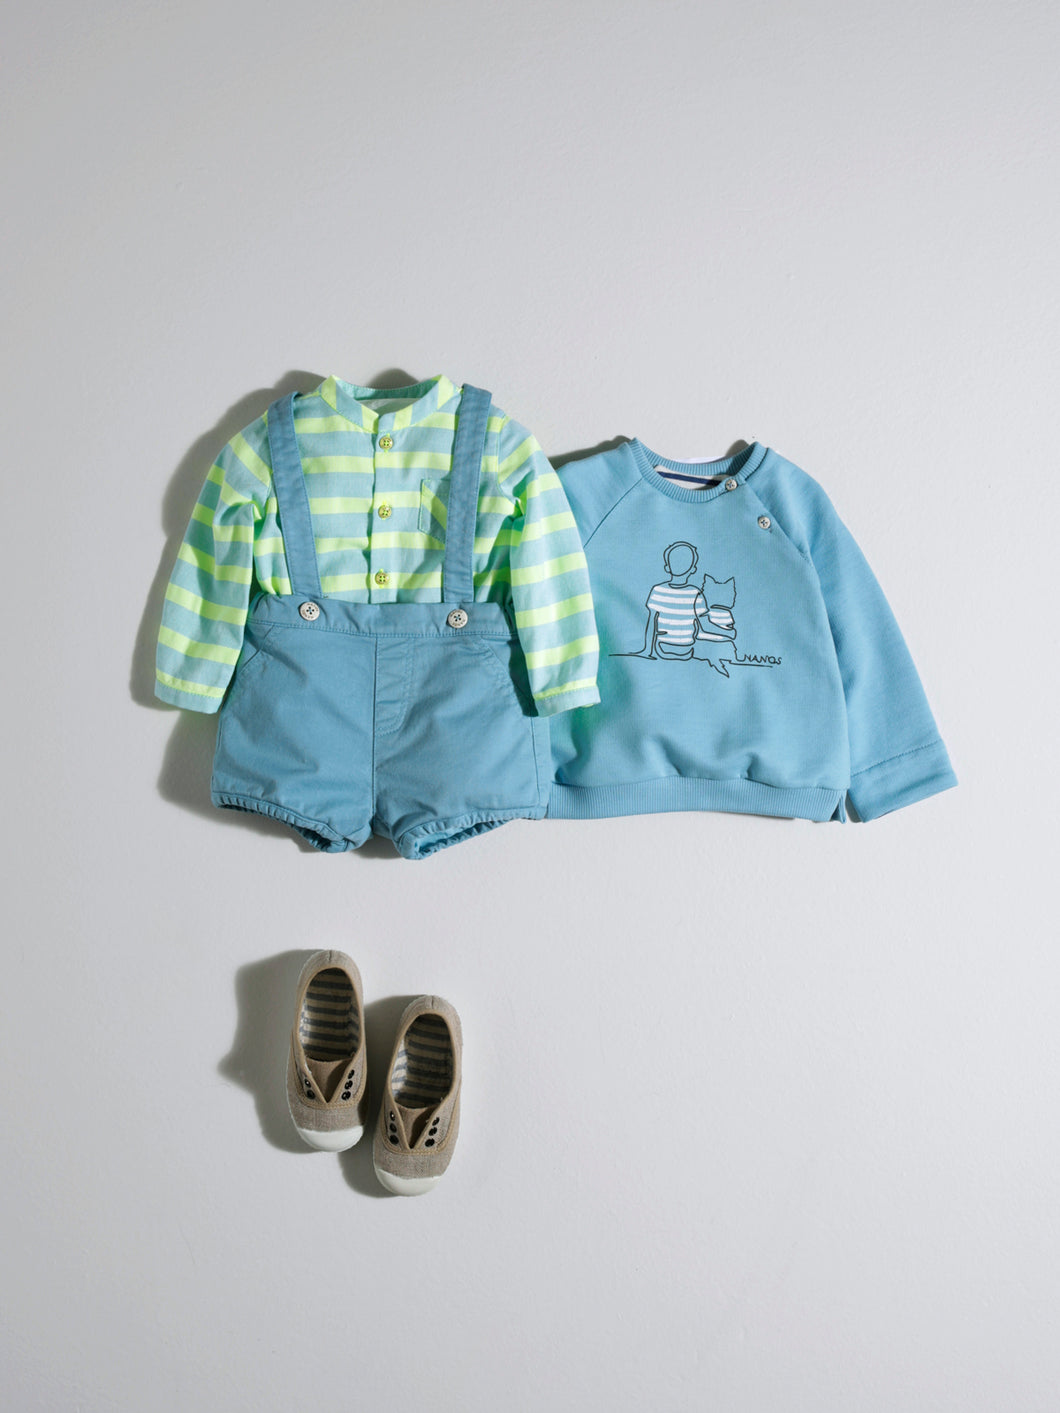 LITTLE BOY SHORTS IN TURQUOISE COLOUR